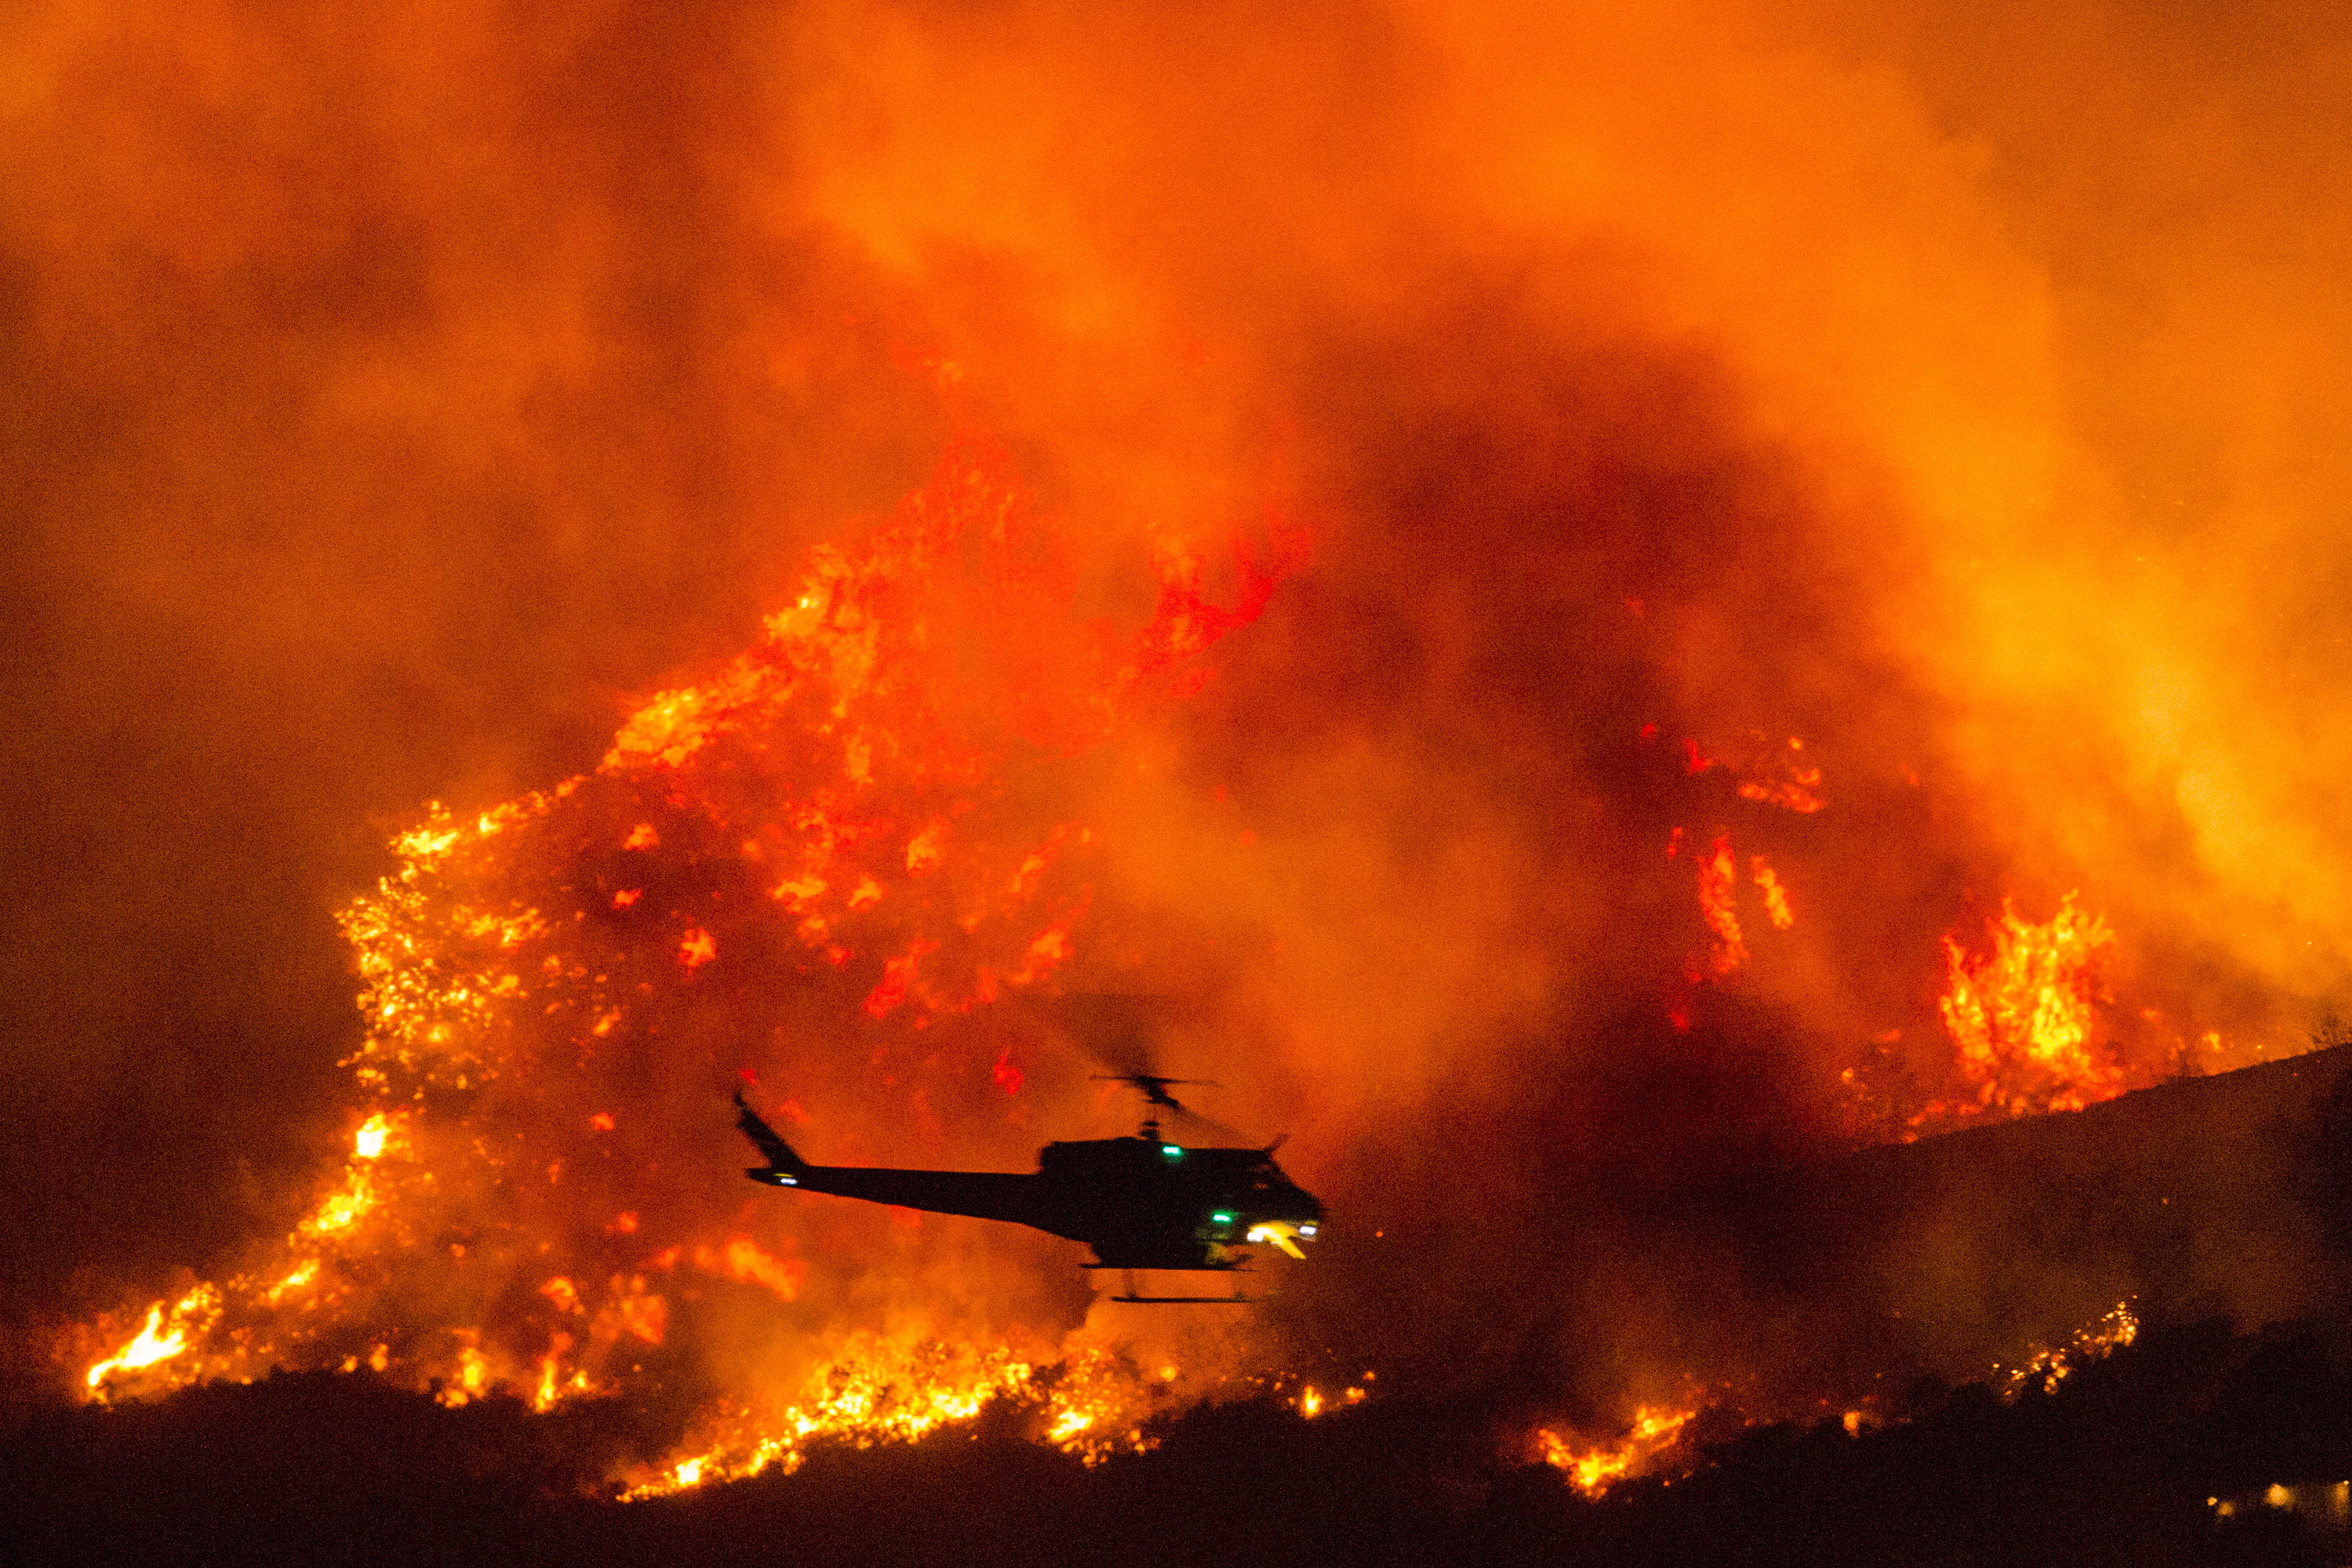 California National Guard • Rescues over 200 People from Creek Fire • California 06 Sep 2020